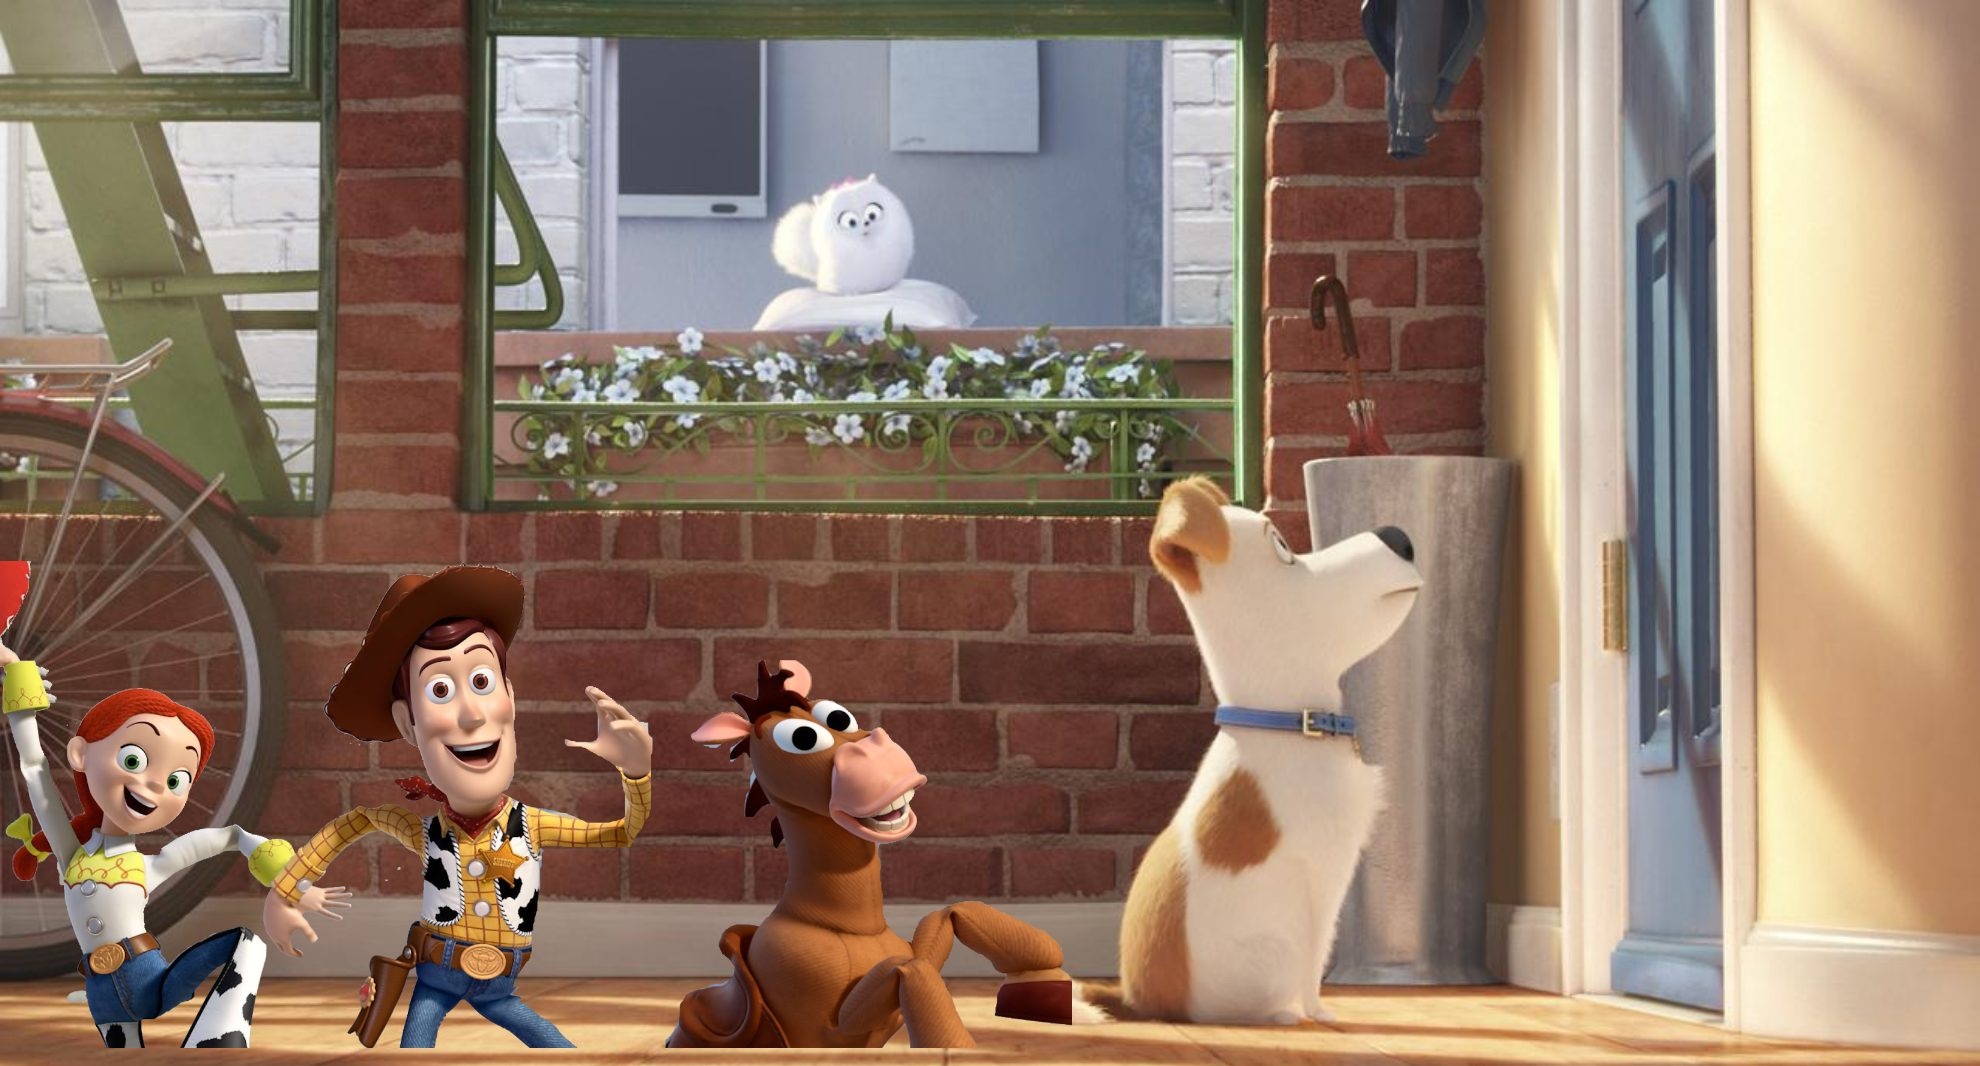 'The Secret Life of Pets' Is Weirdly Identical to 'Toy Story'